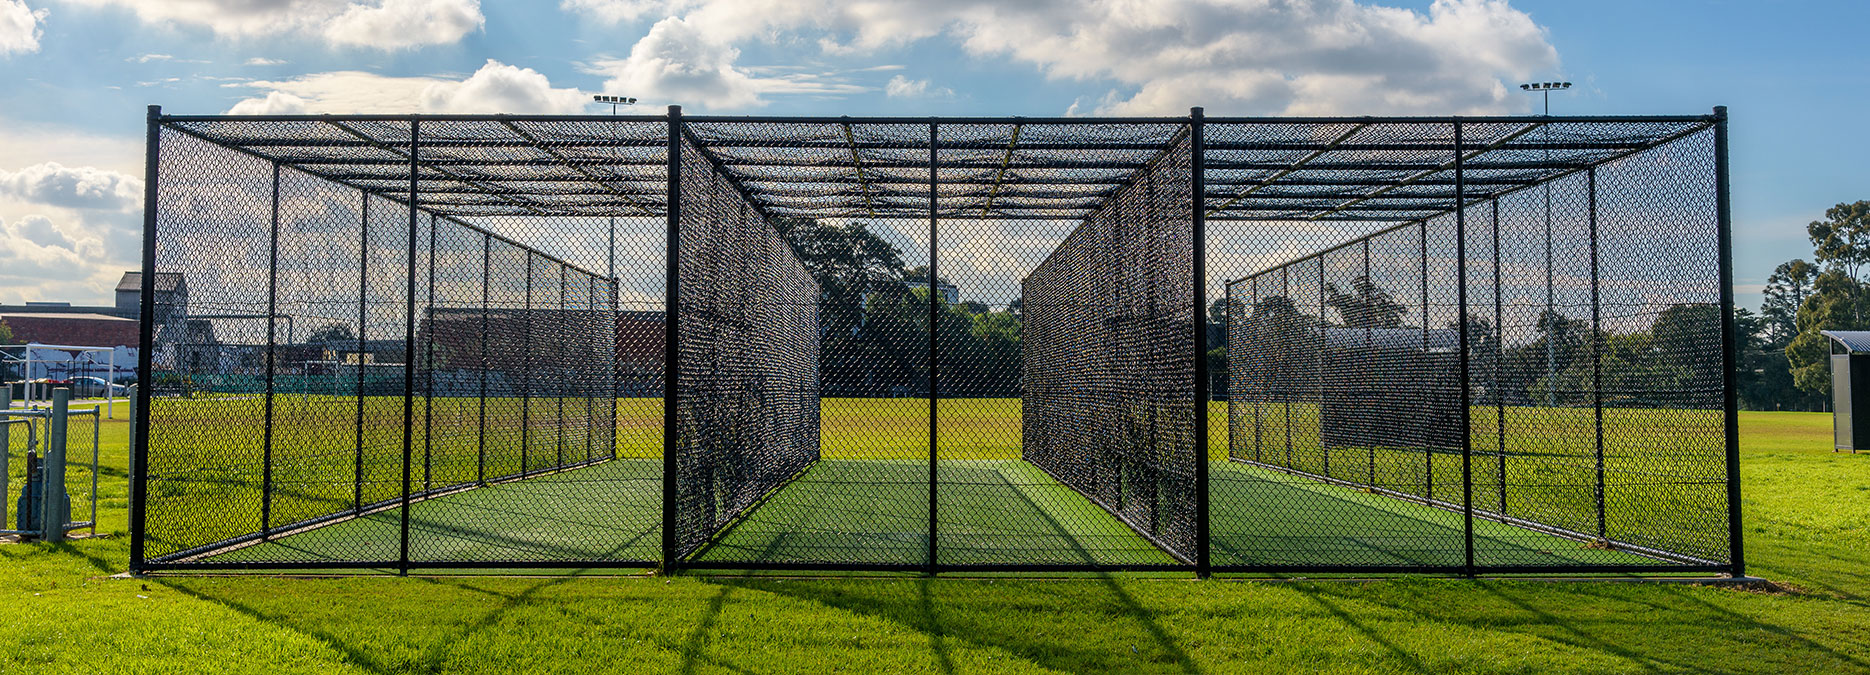 pros and cons of batting cages backyard sports rh mybackyardsports com  best home batting cages